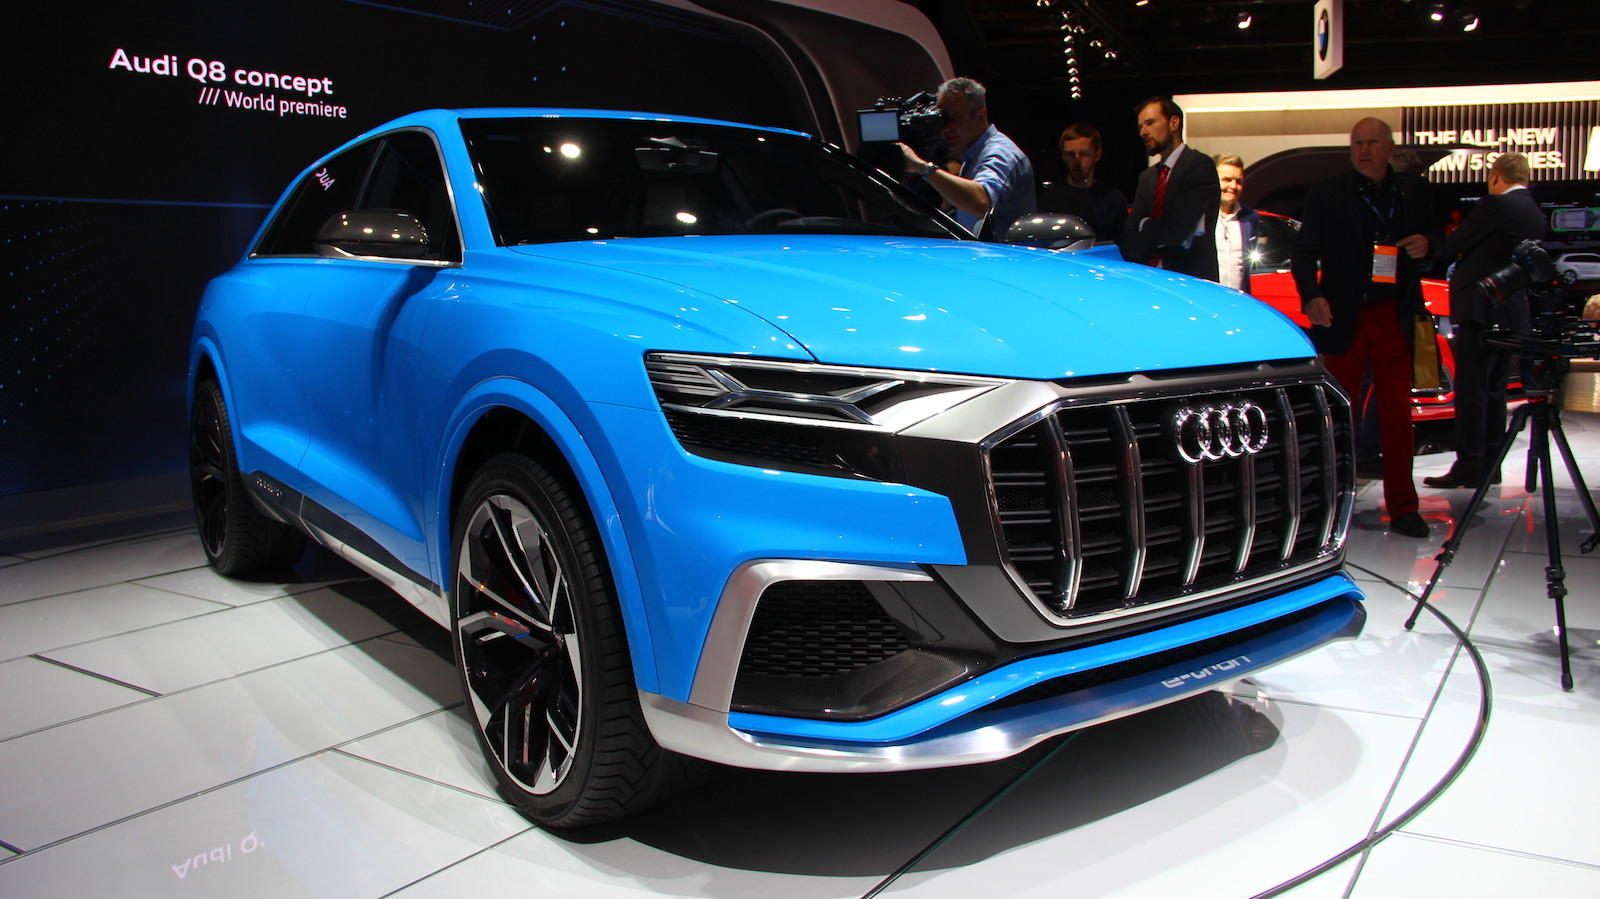 Audi Q8 Concept Jumps On The Coupe Suv Bandwagon 187 Autoguide Com News